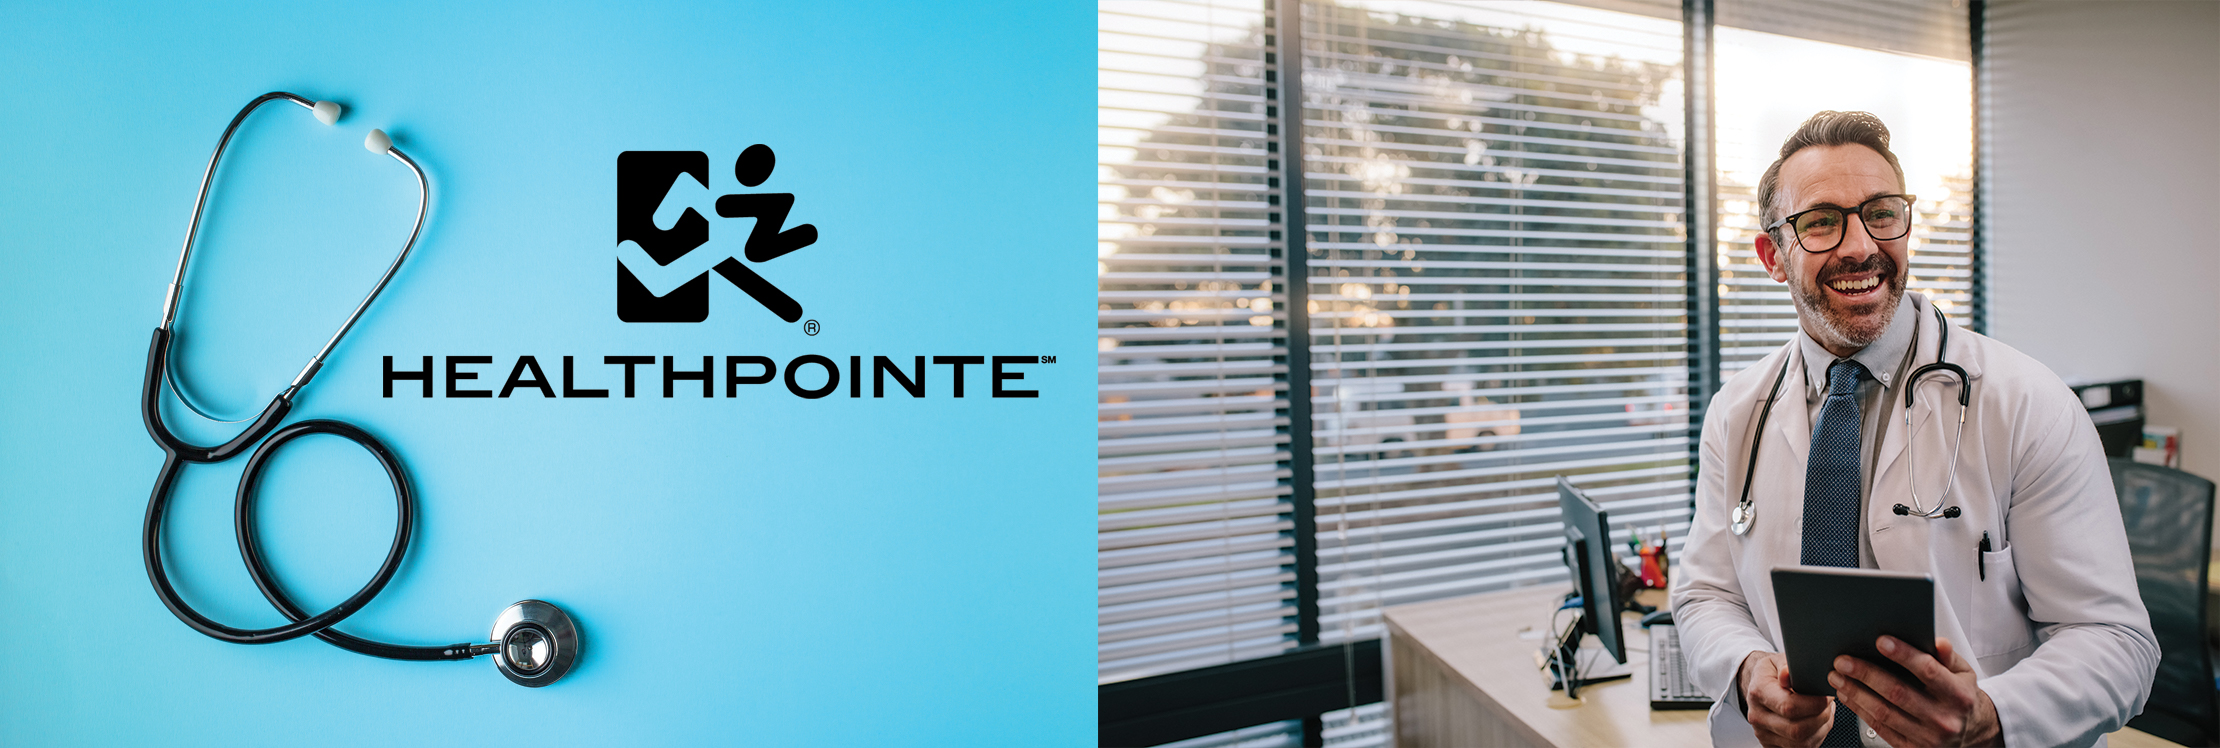 Healthpointe reviews | Medical Centers at 5345 Irwindale Ave - Irwindale CA